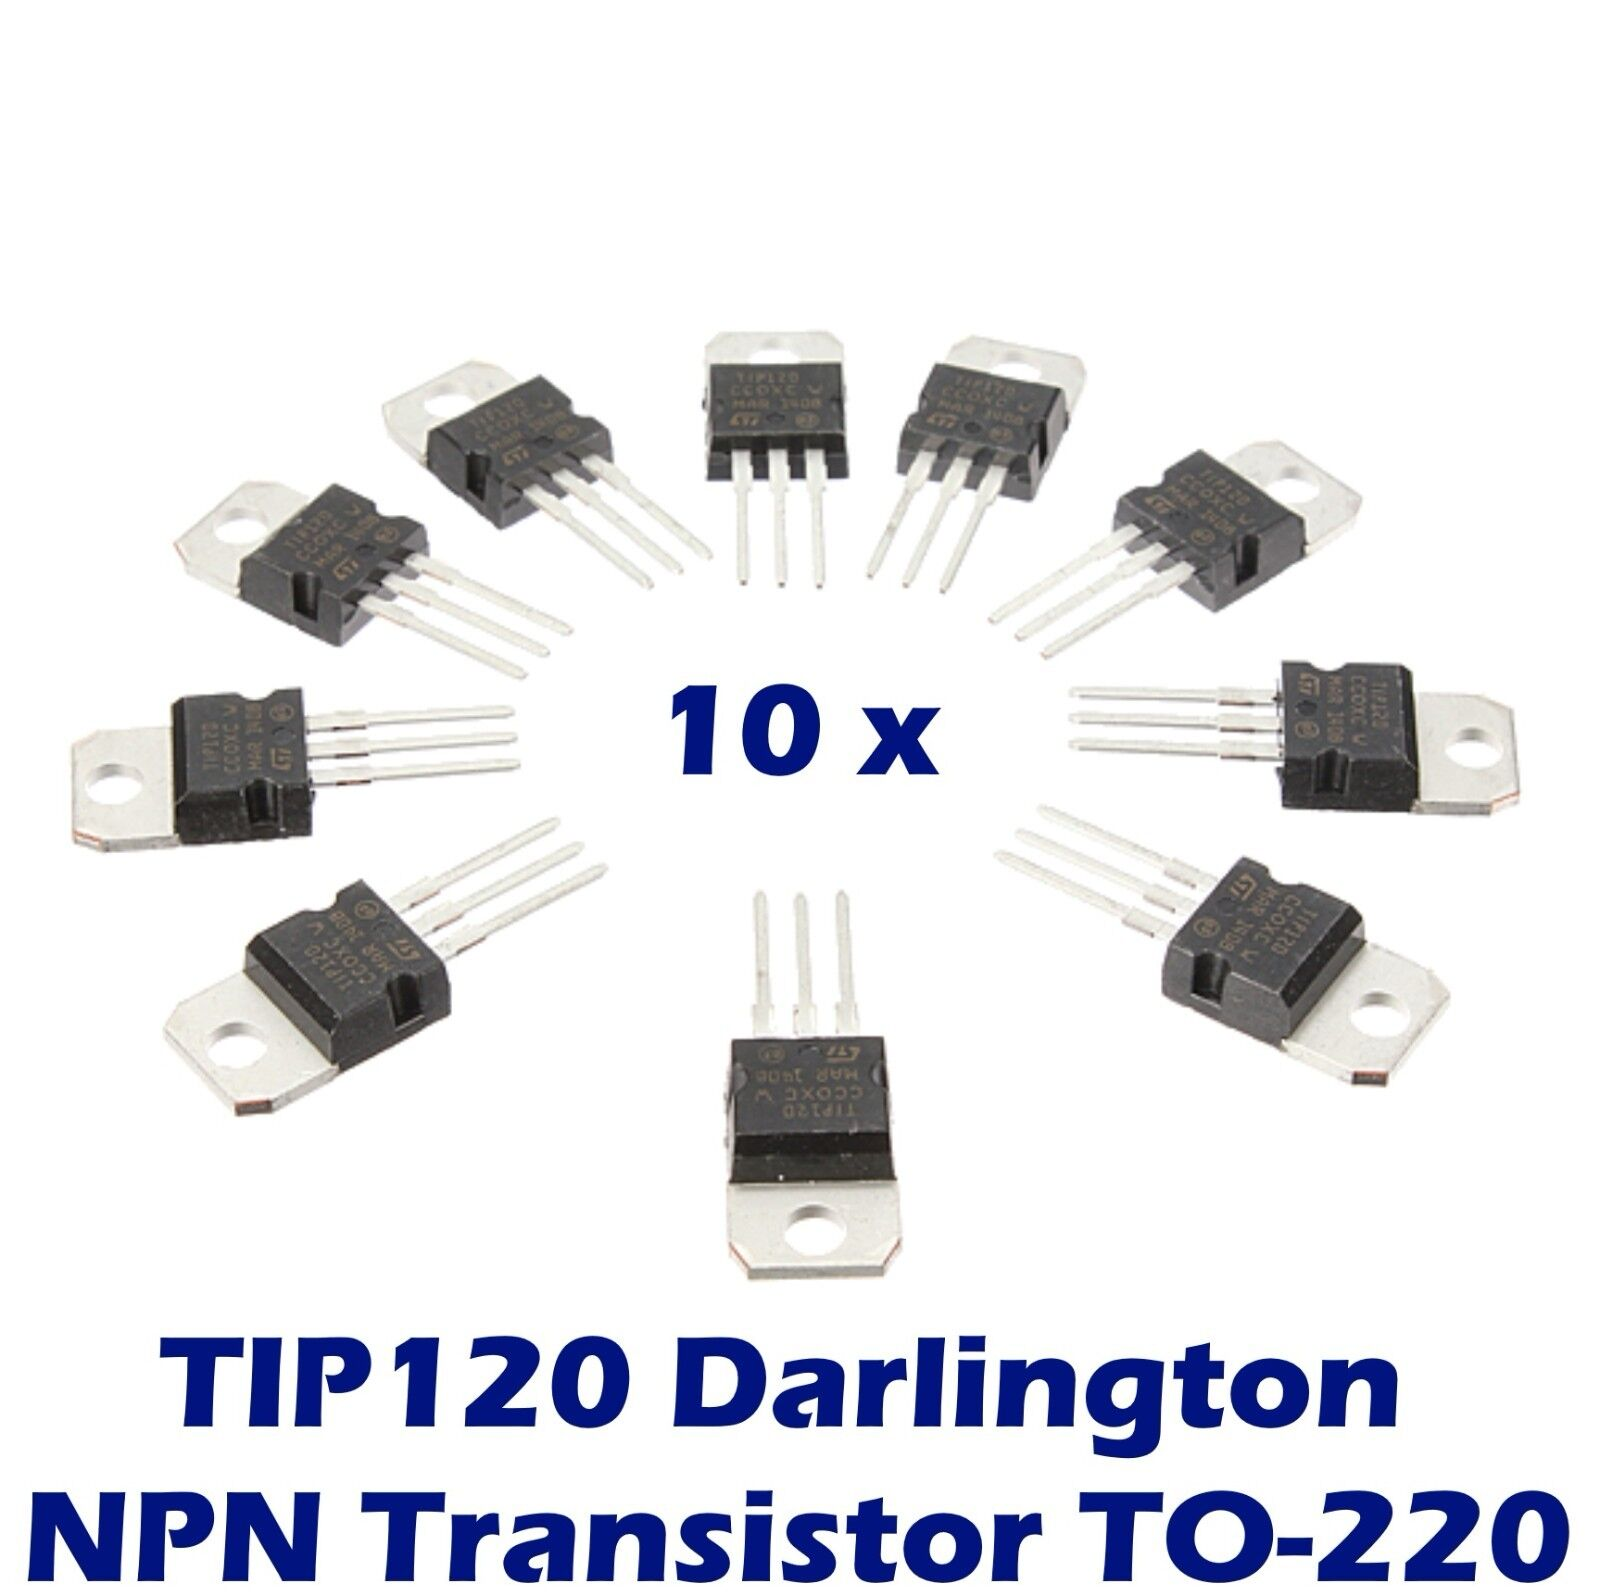 10 Pcs Tip120 Darlington Transistor To 220 Npn Bjt St For Arduino Ebay Amplifier Related Keywords Suggestions Norton Secured Powered By Verisign